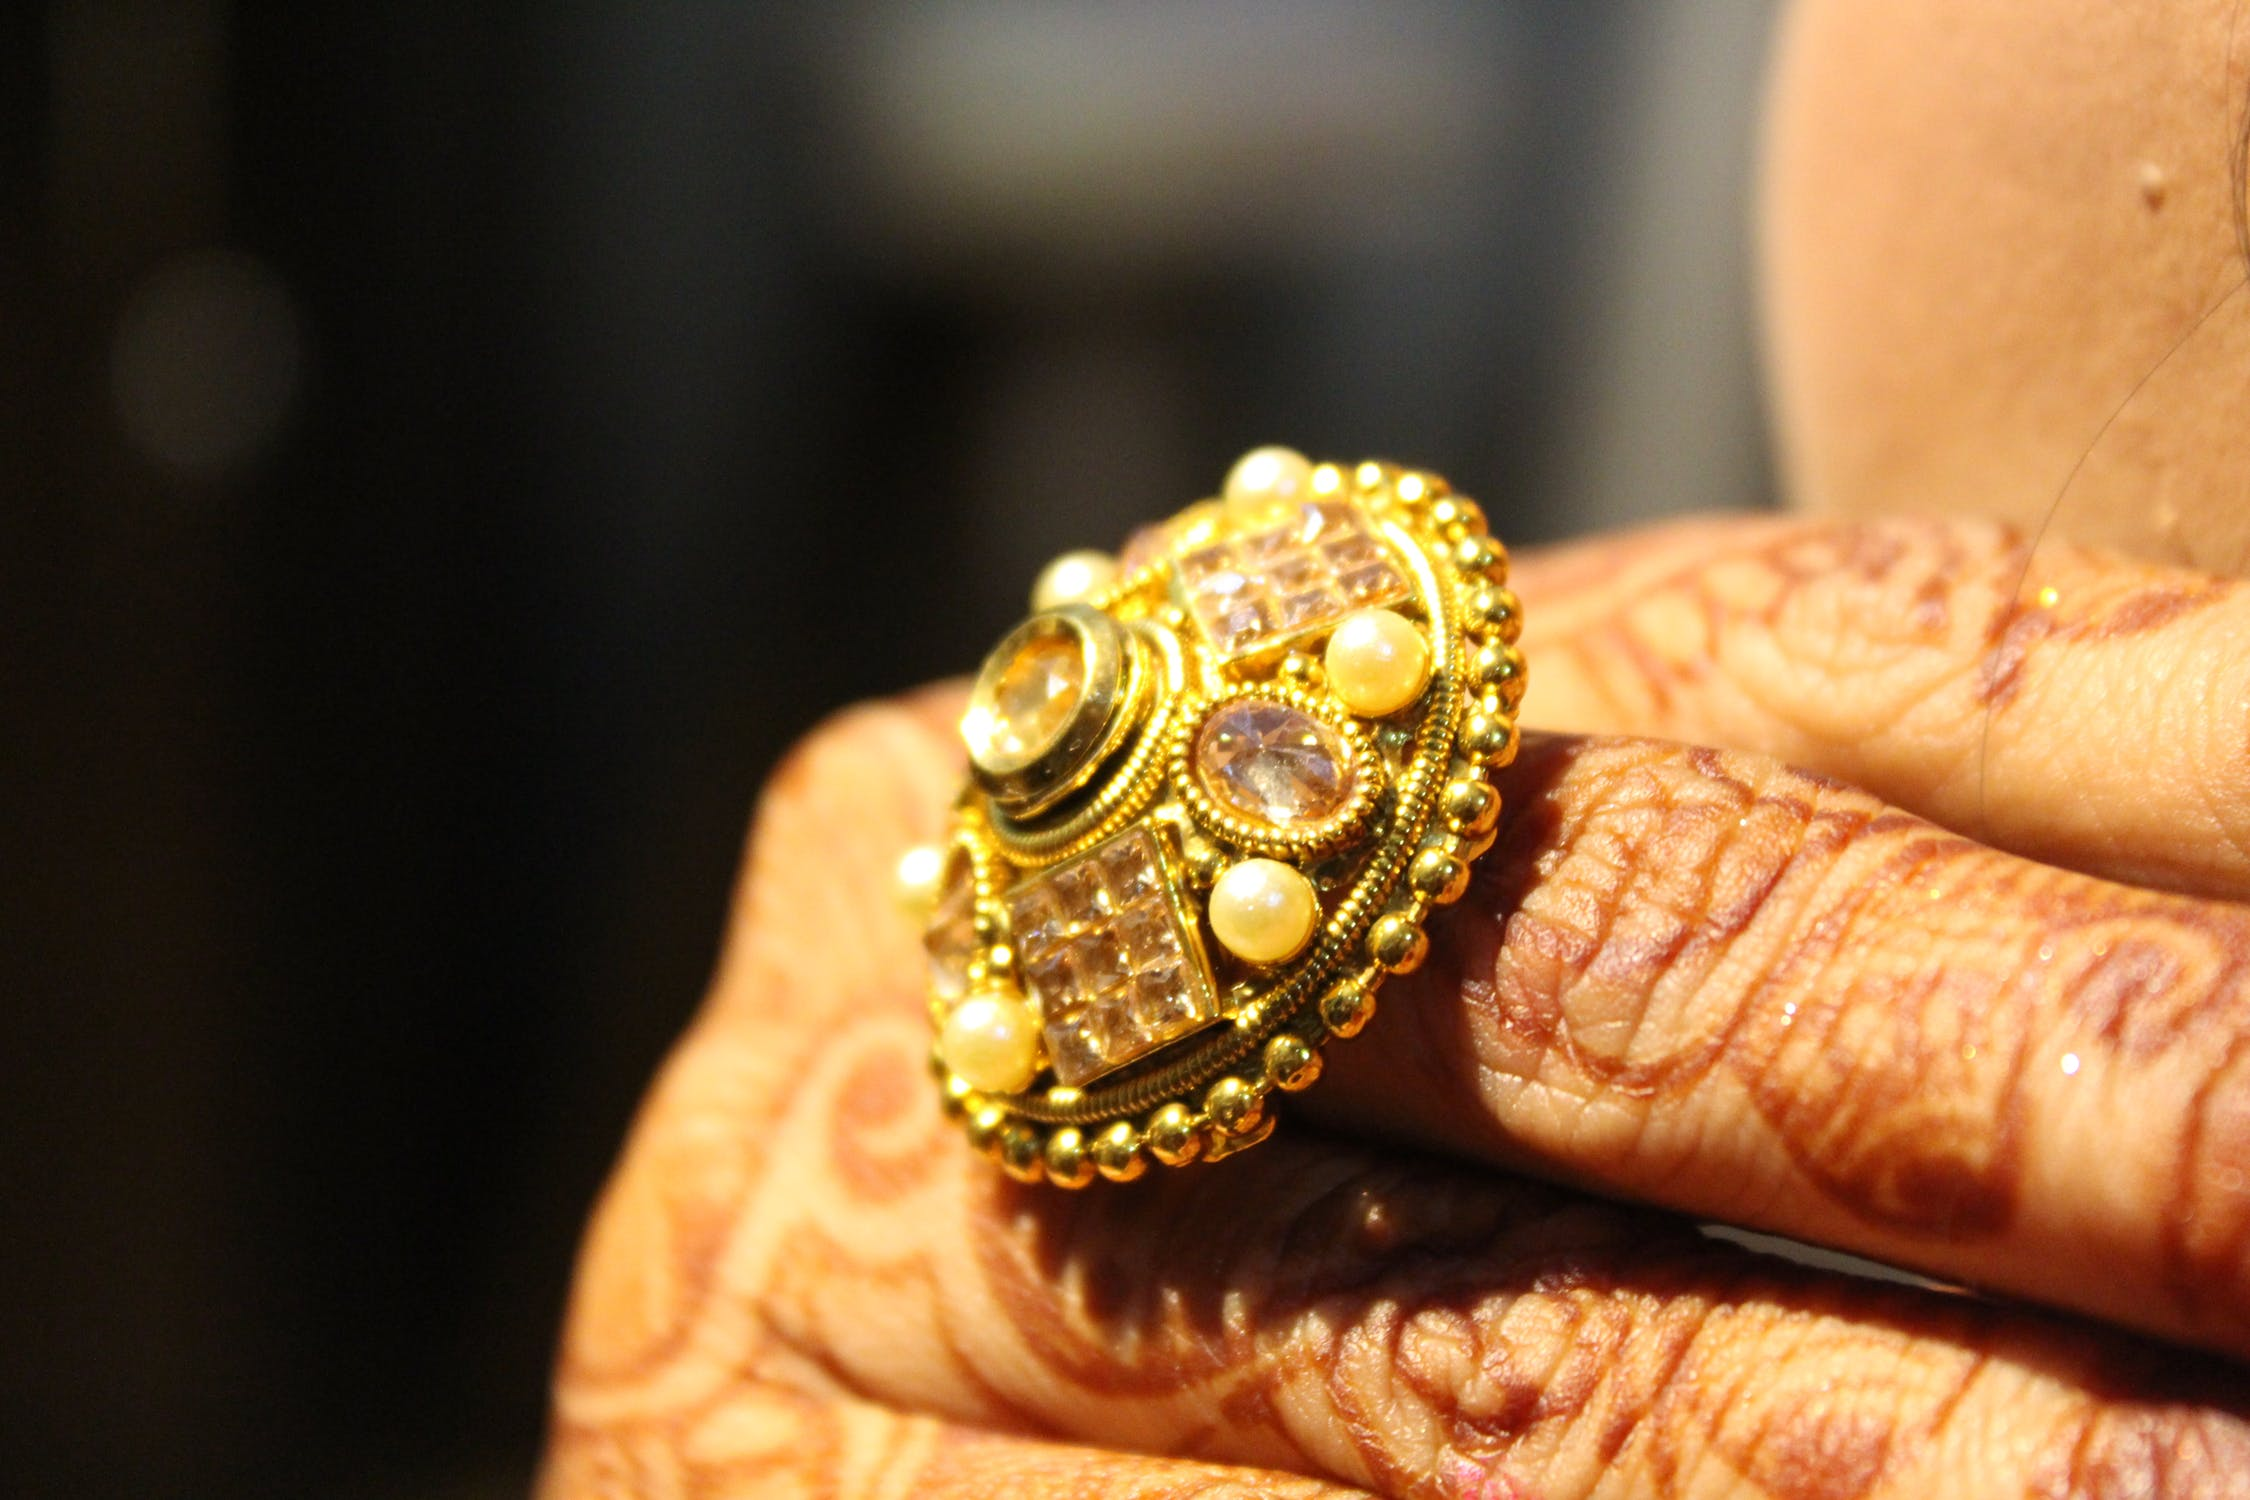 Ring worth $550K stolen while on holiday - insurer forced to